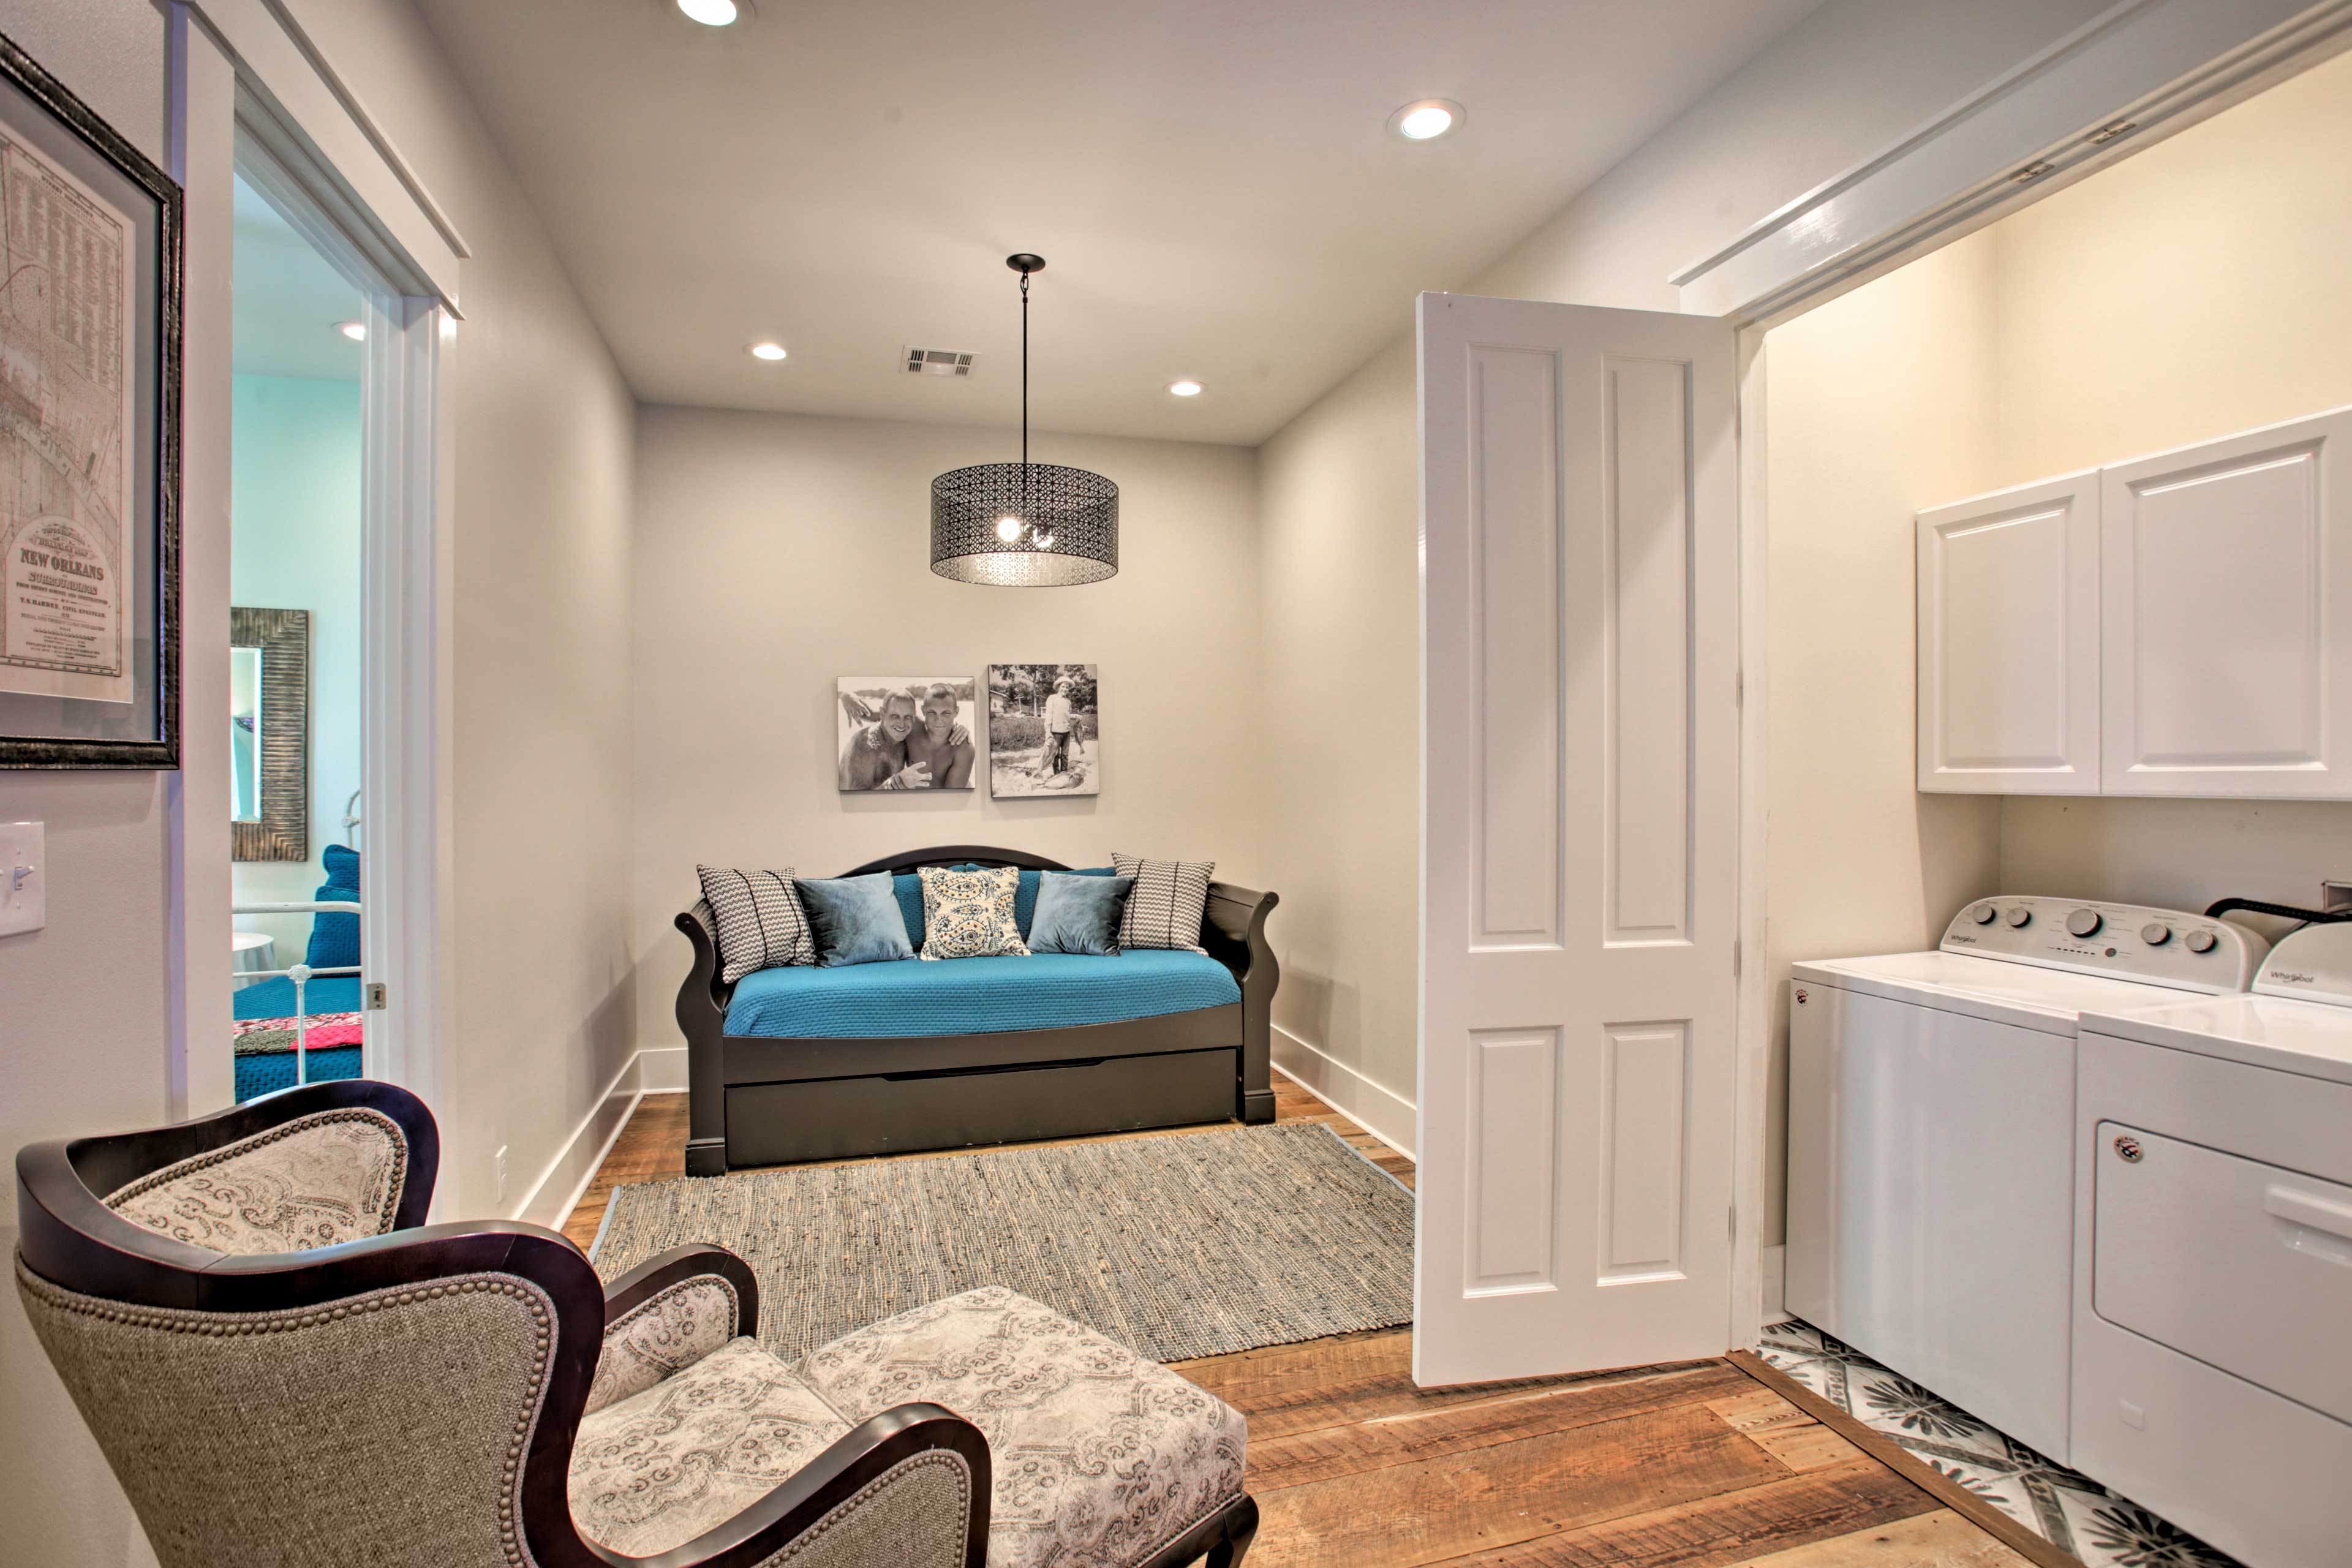 The laundry machines and twin daybed are tucked just around the corner.